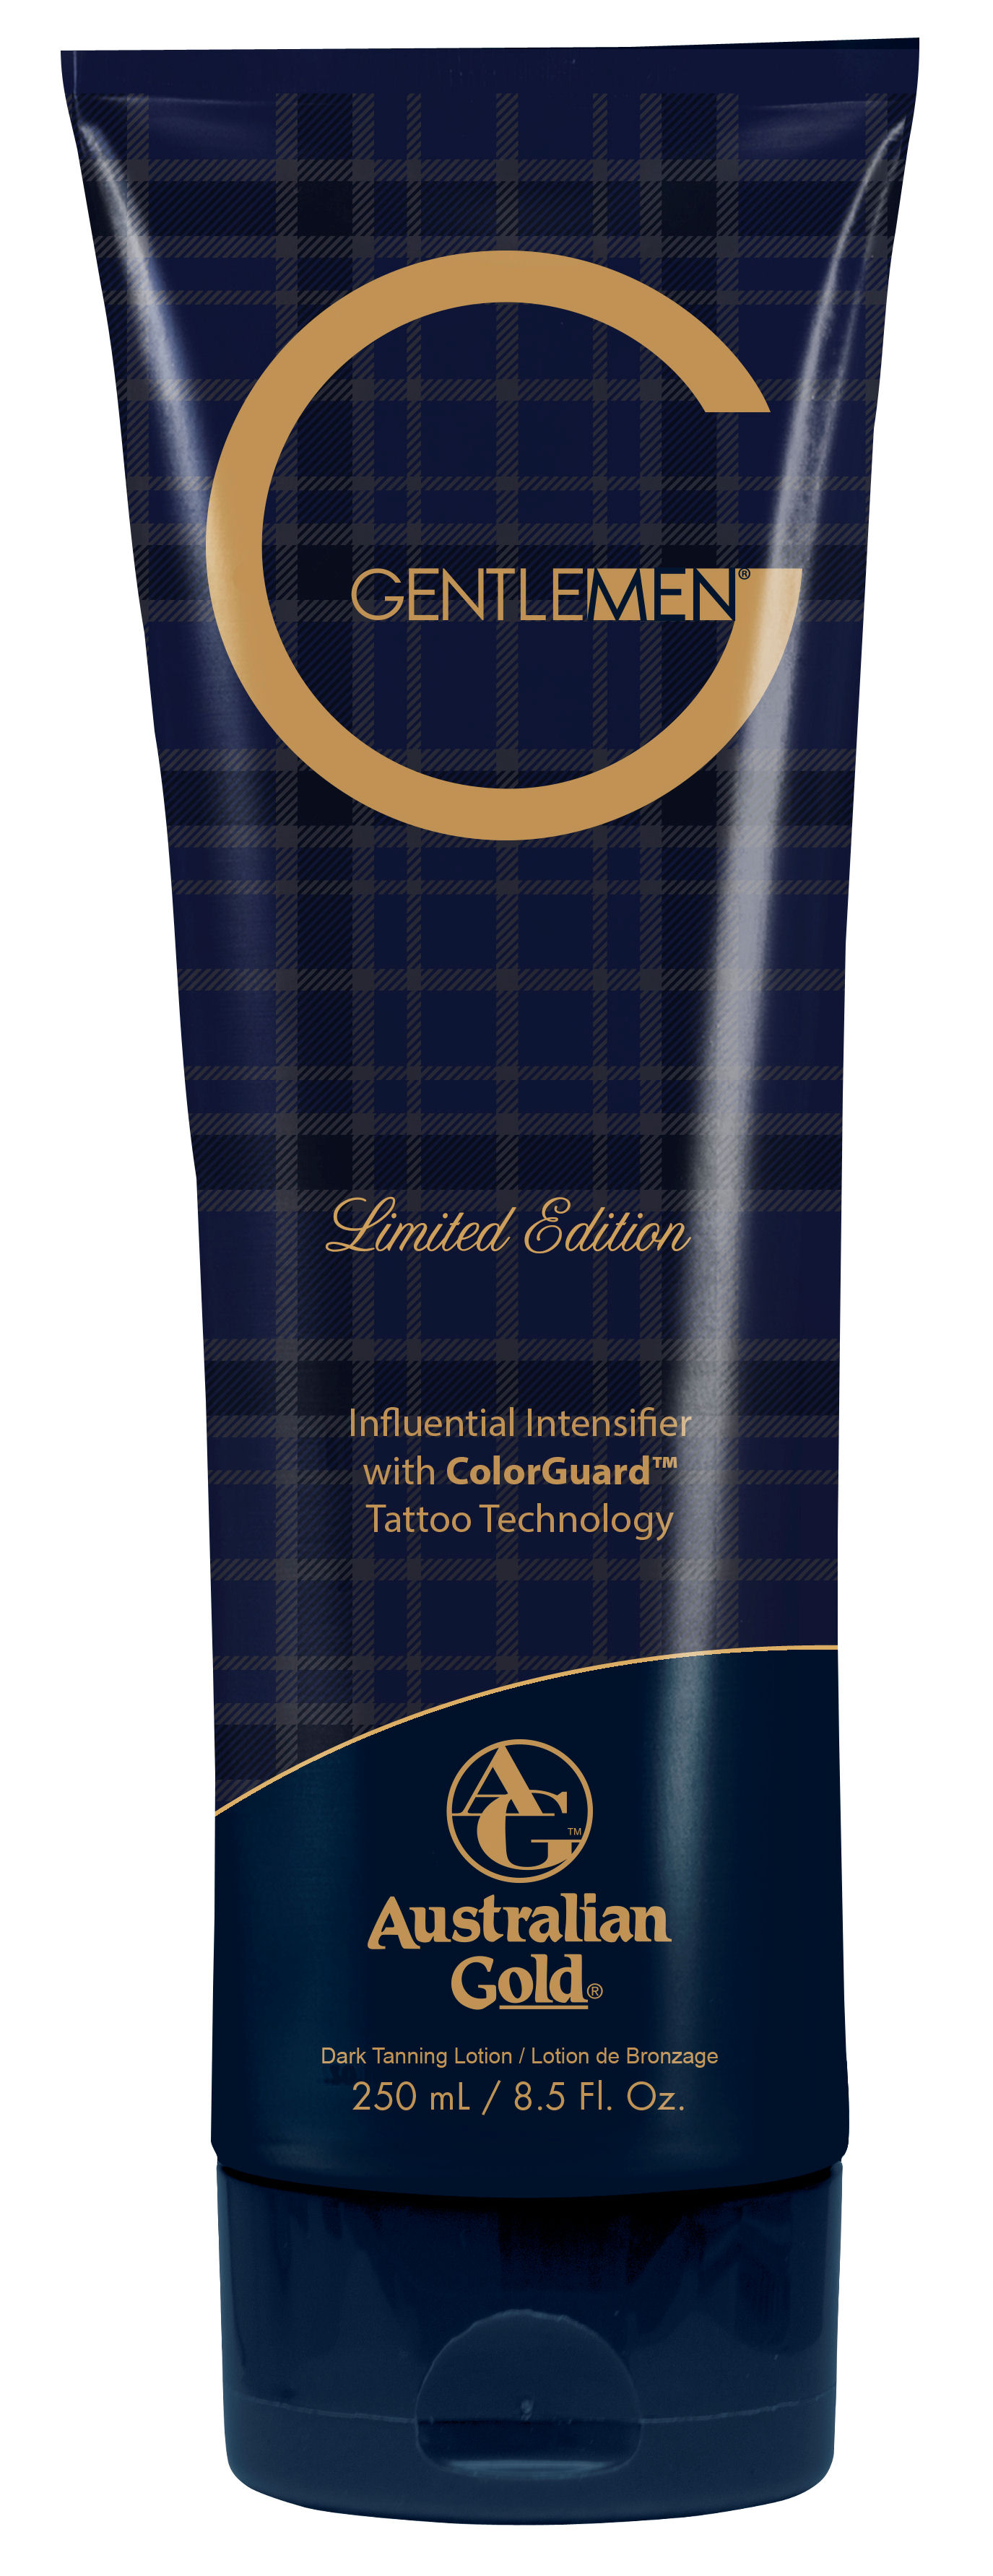 G Gentlemen® Limited Edition Intensifier with ColorGuard™ Tattoo Technology BOTTLES ONLY ON SALE!